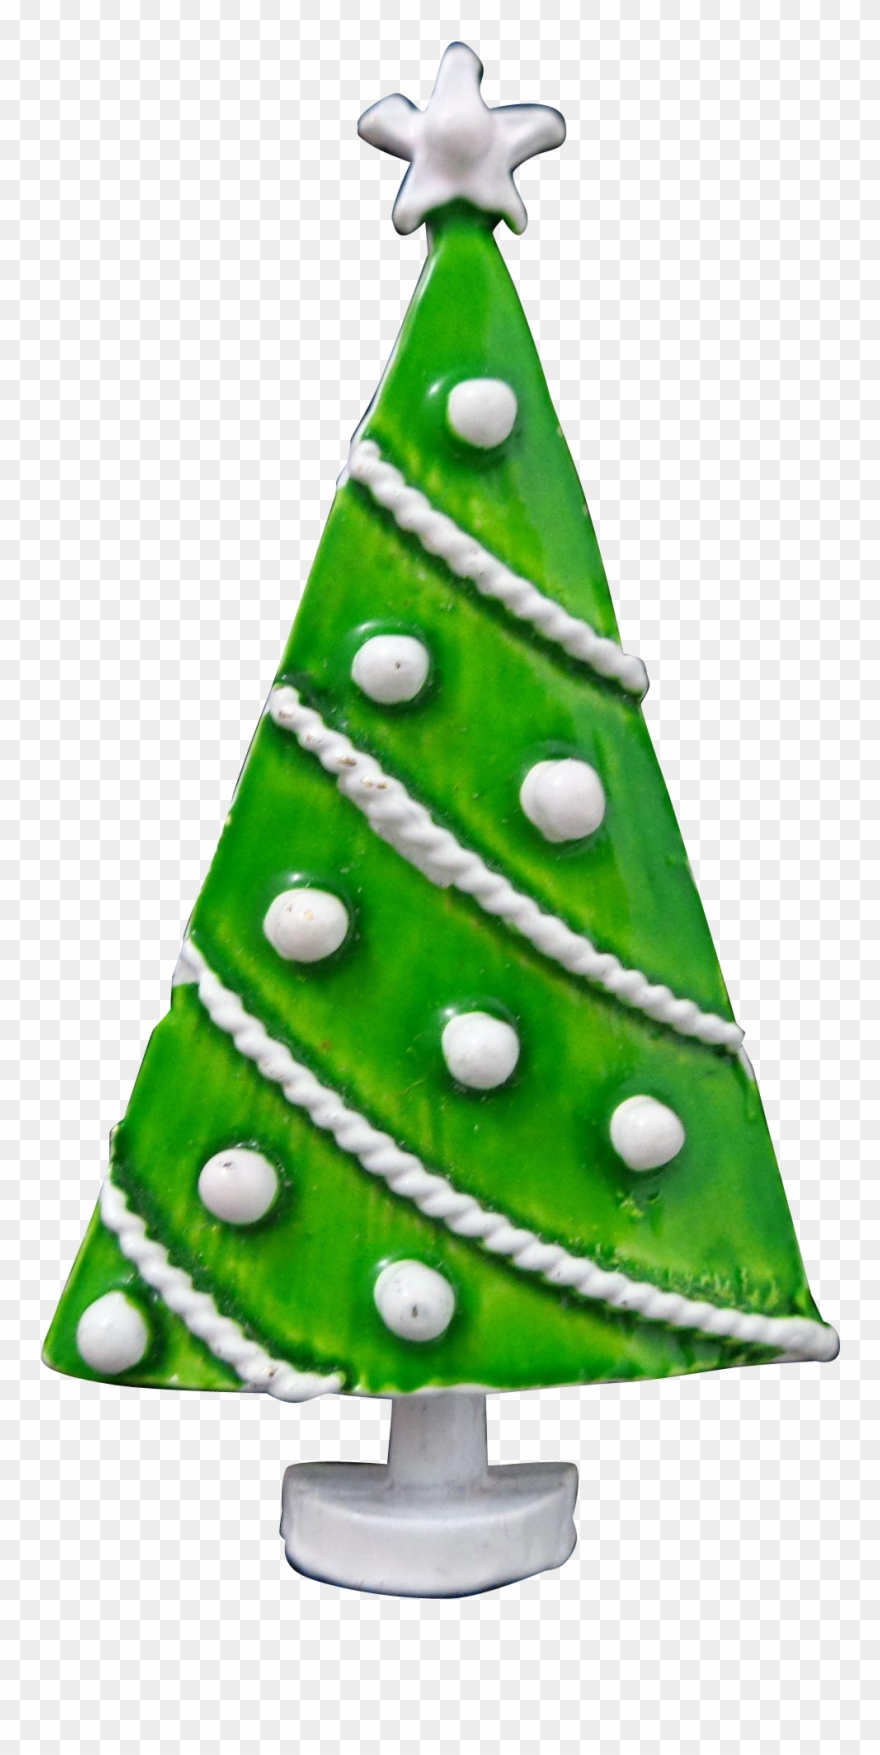 Vintage Green White Polka Dot Christmas Tree Pin Clipart.